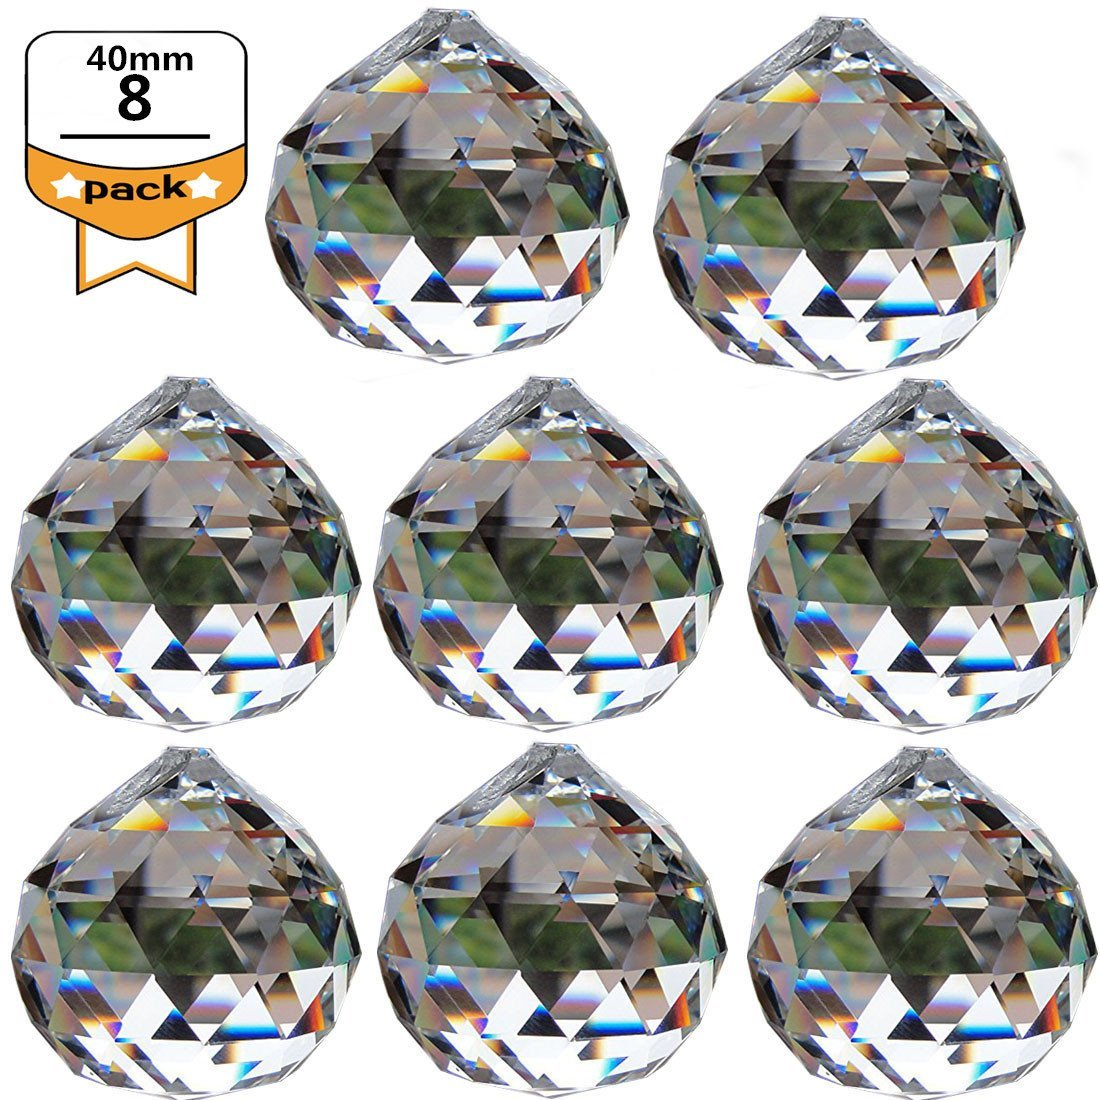 Yoker 40mm Clear Crystal Ball Prisms Pendant Feng Shui Suncatcher Decorating Hanging Faceted Prism Balls (Pack of 8)